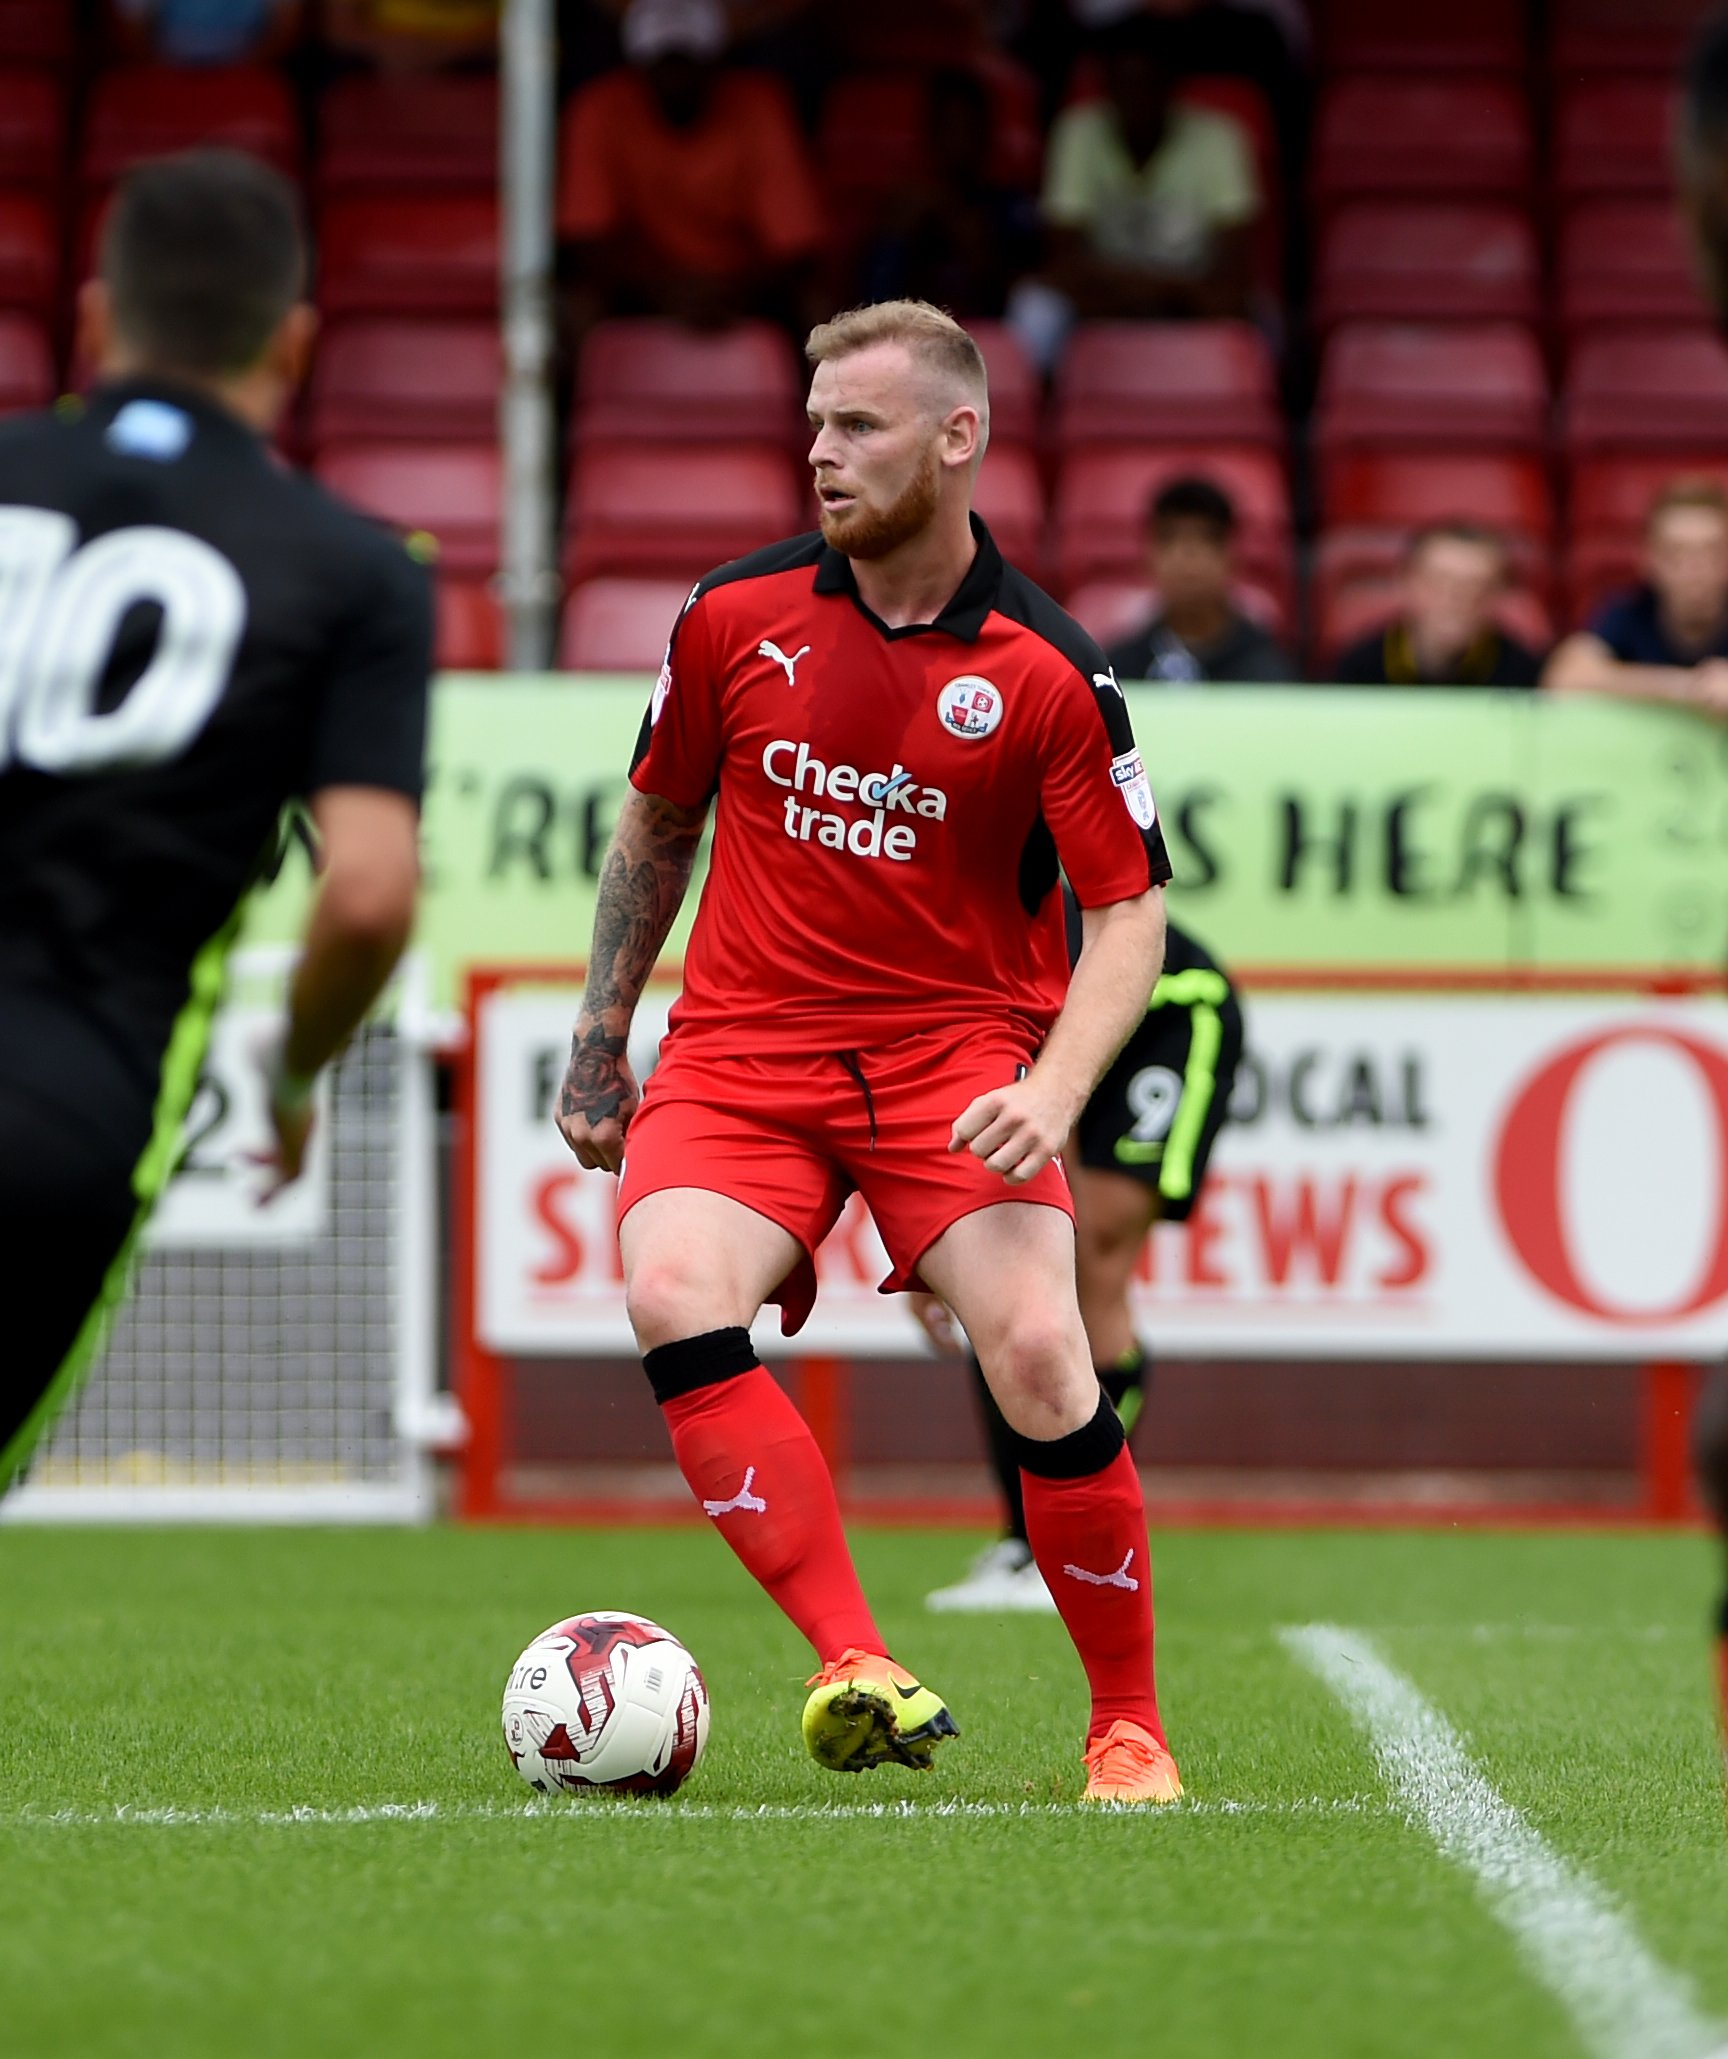 Crawley Town defender signs for Scottish Championship side